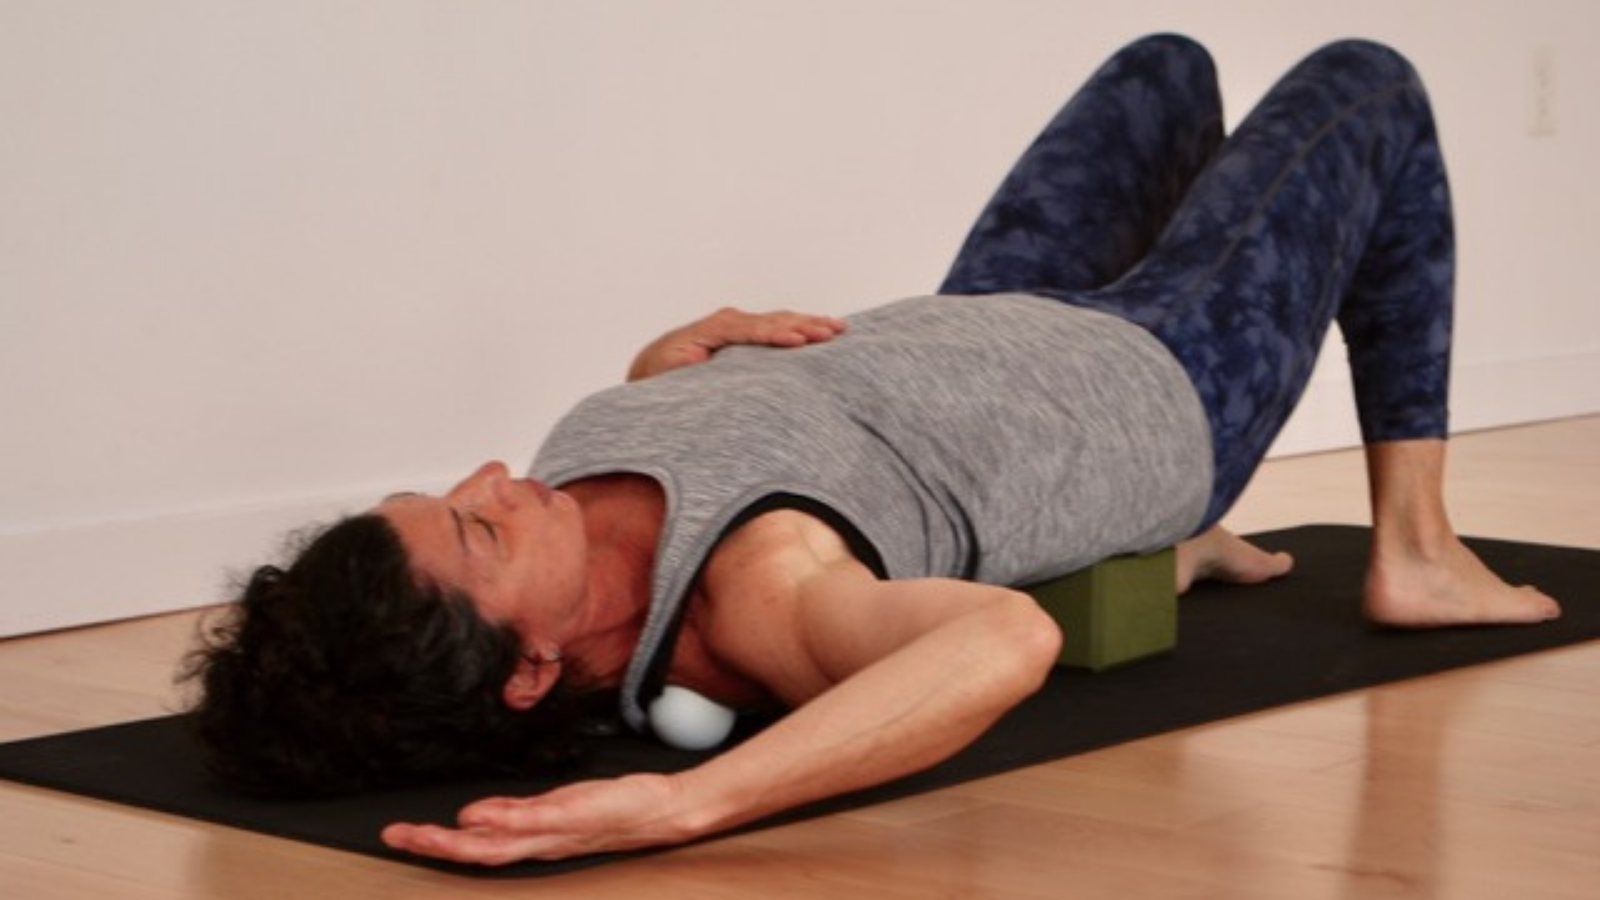 A yoga student in class practicing myofascial release with the use of a yoga block and props